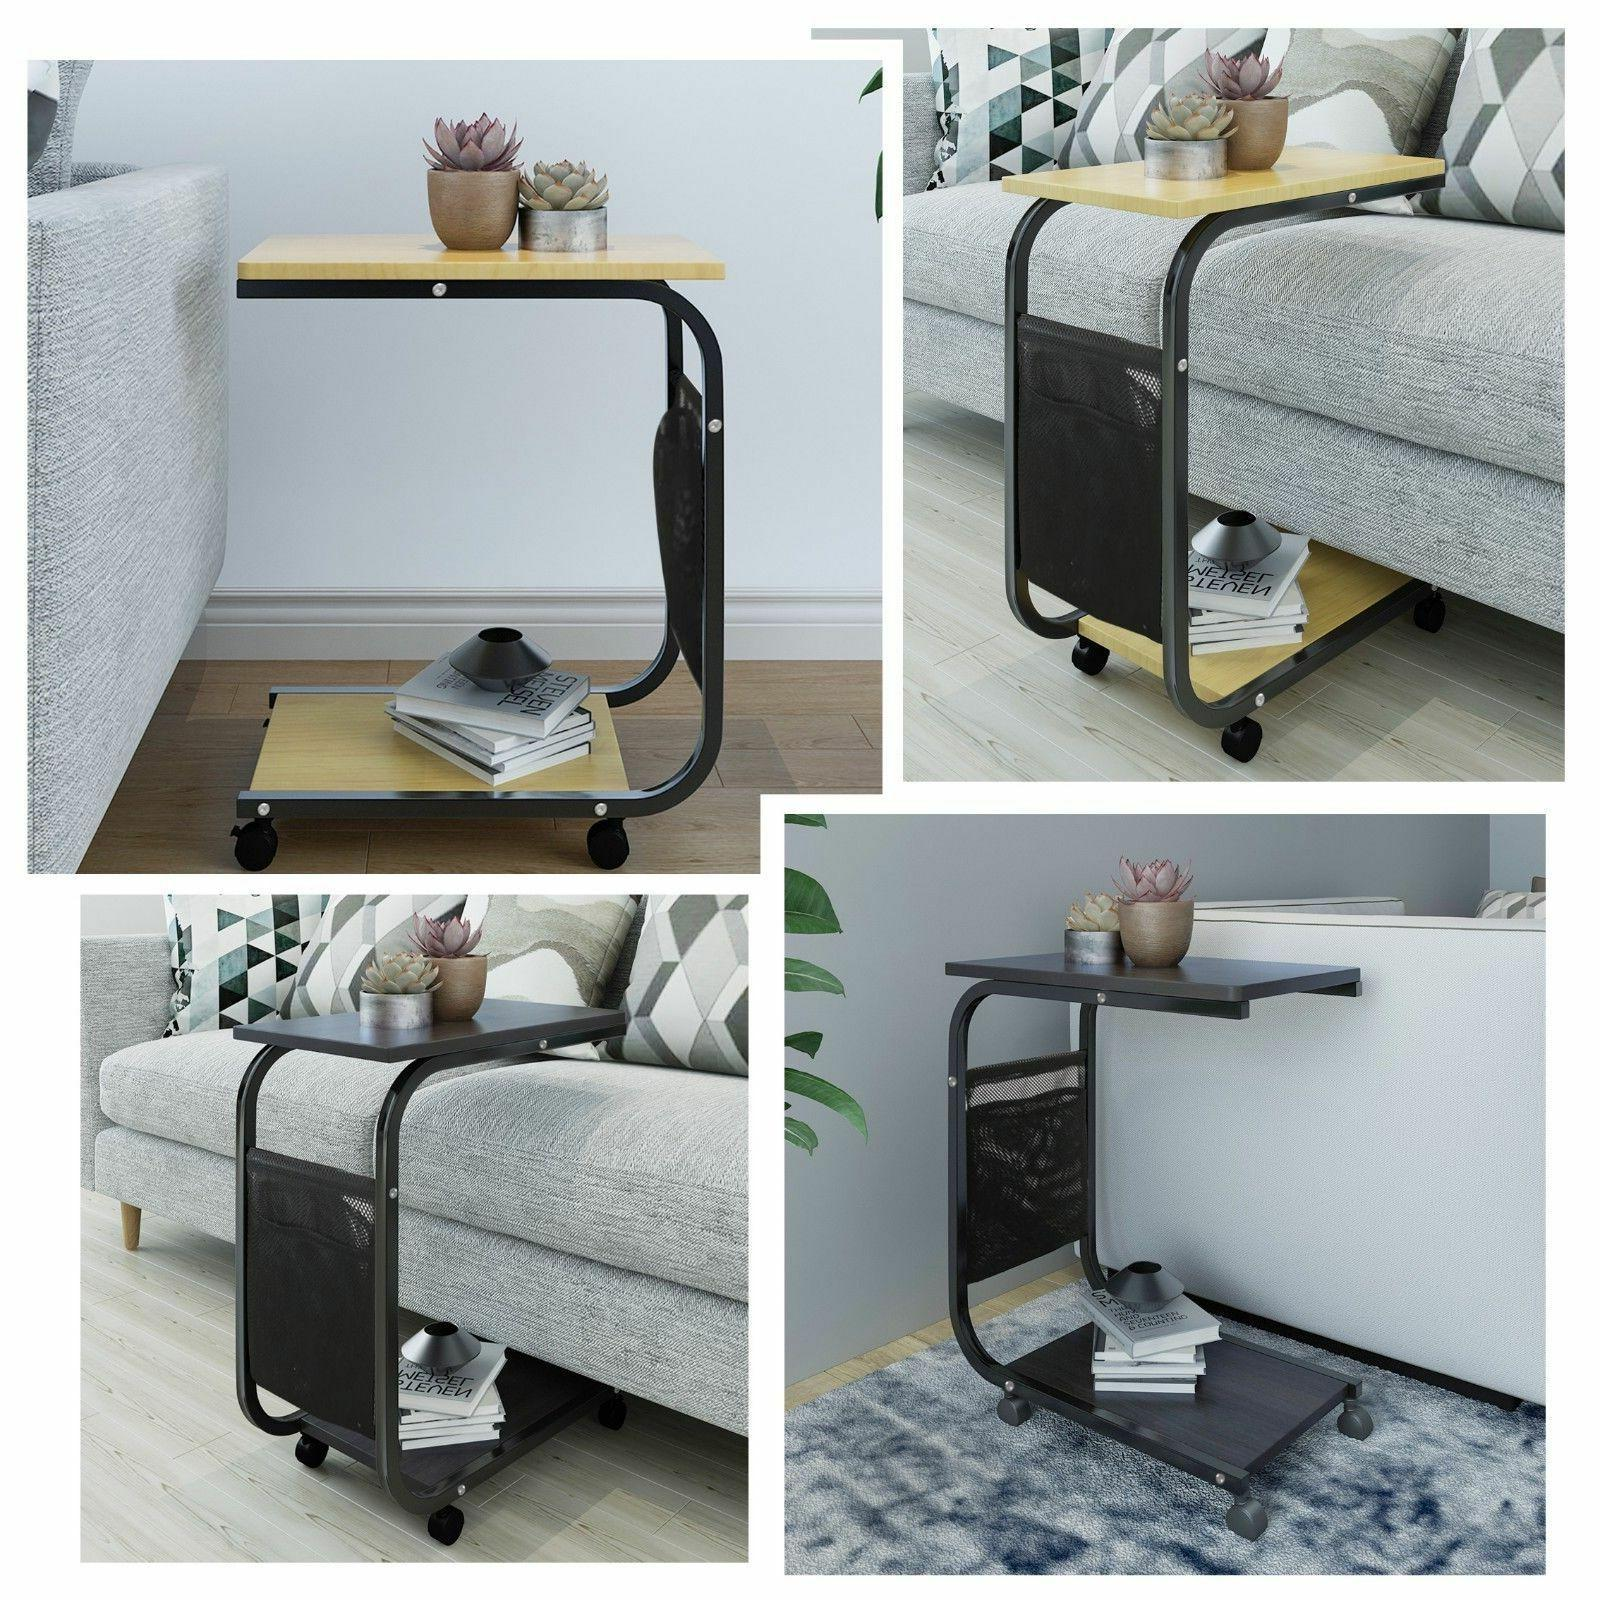 sofa side end table with storage pocket